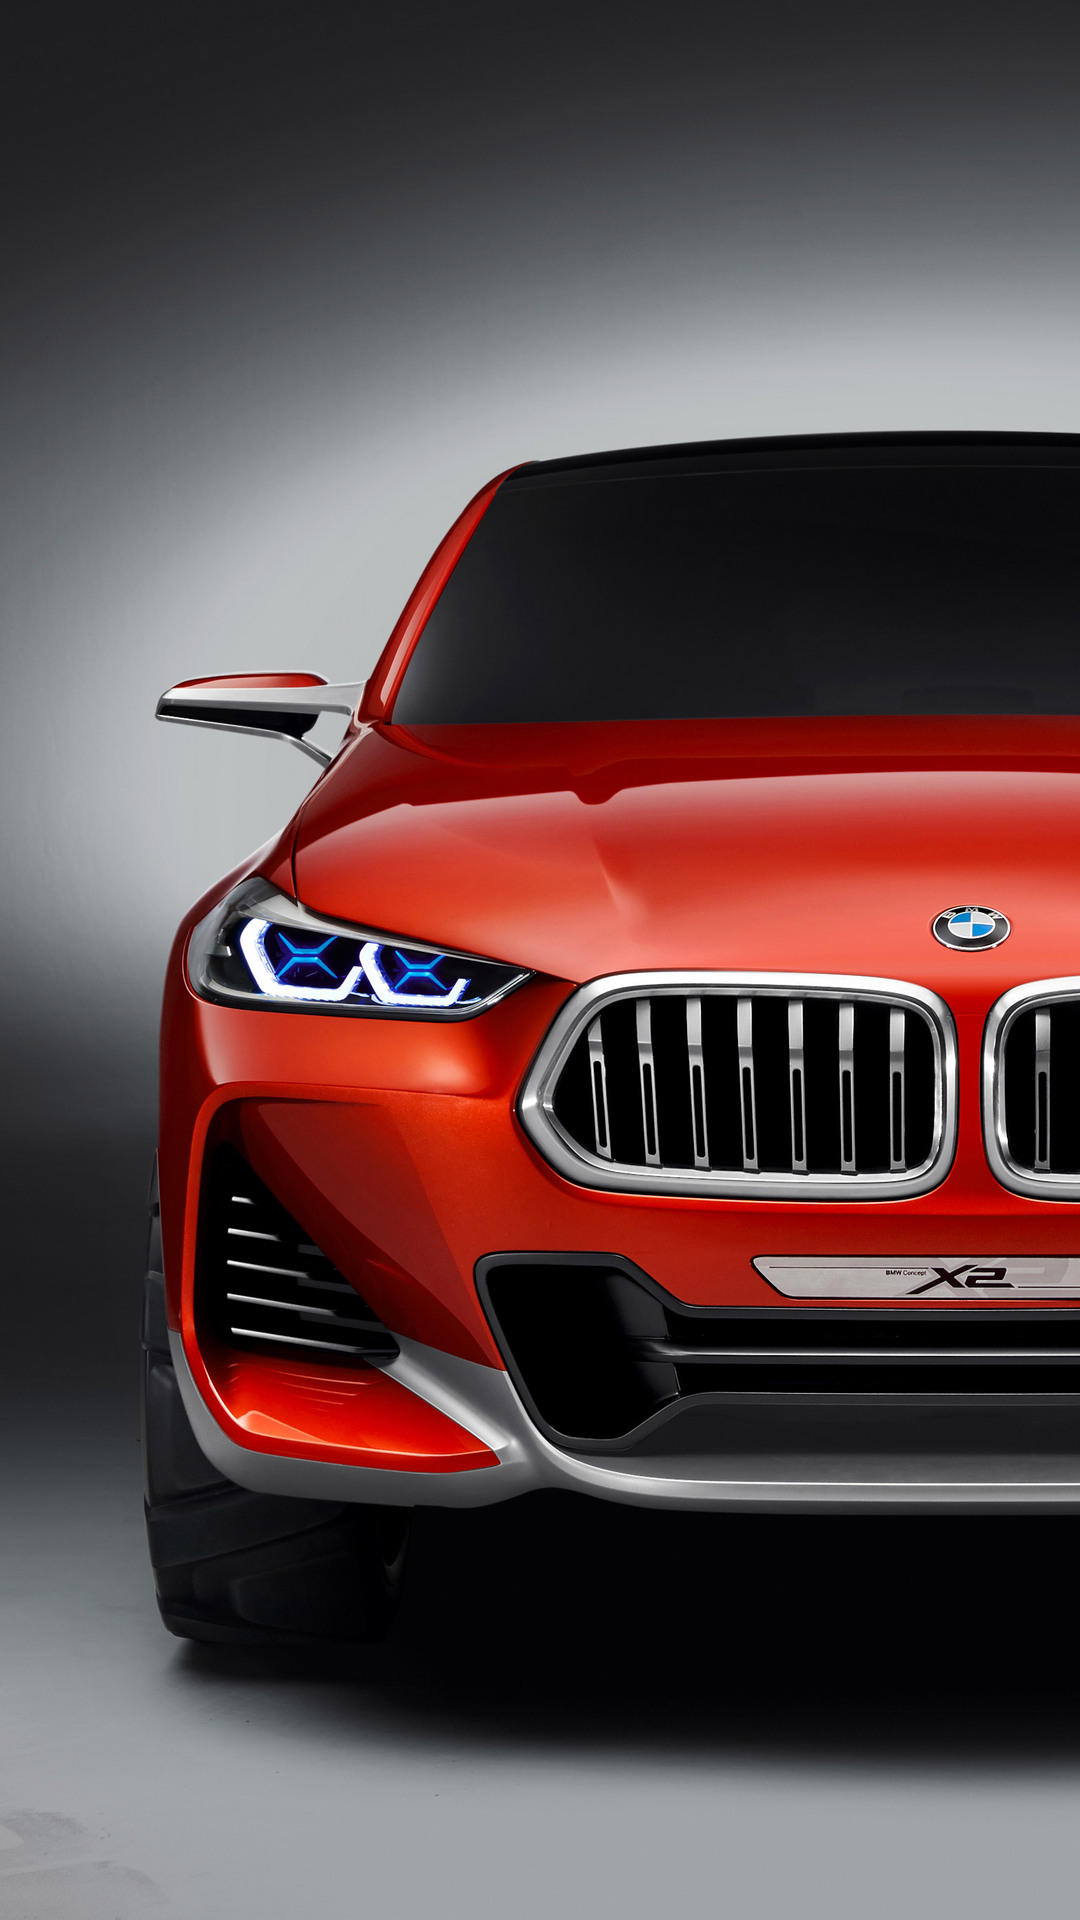 Download 2018 Bmw X2 Concept Car Hd 4k Wallpapers In